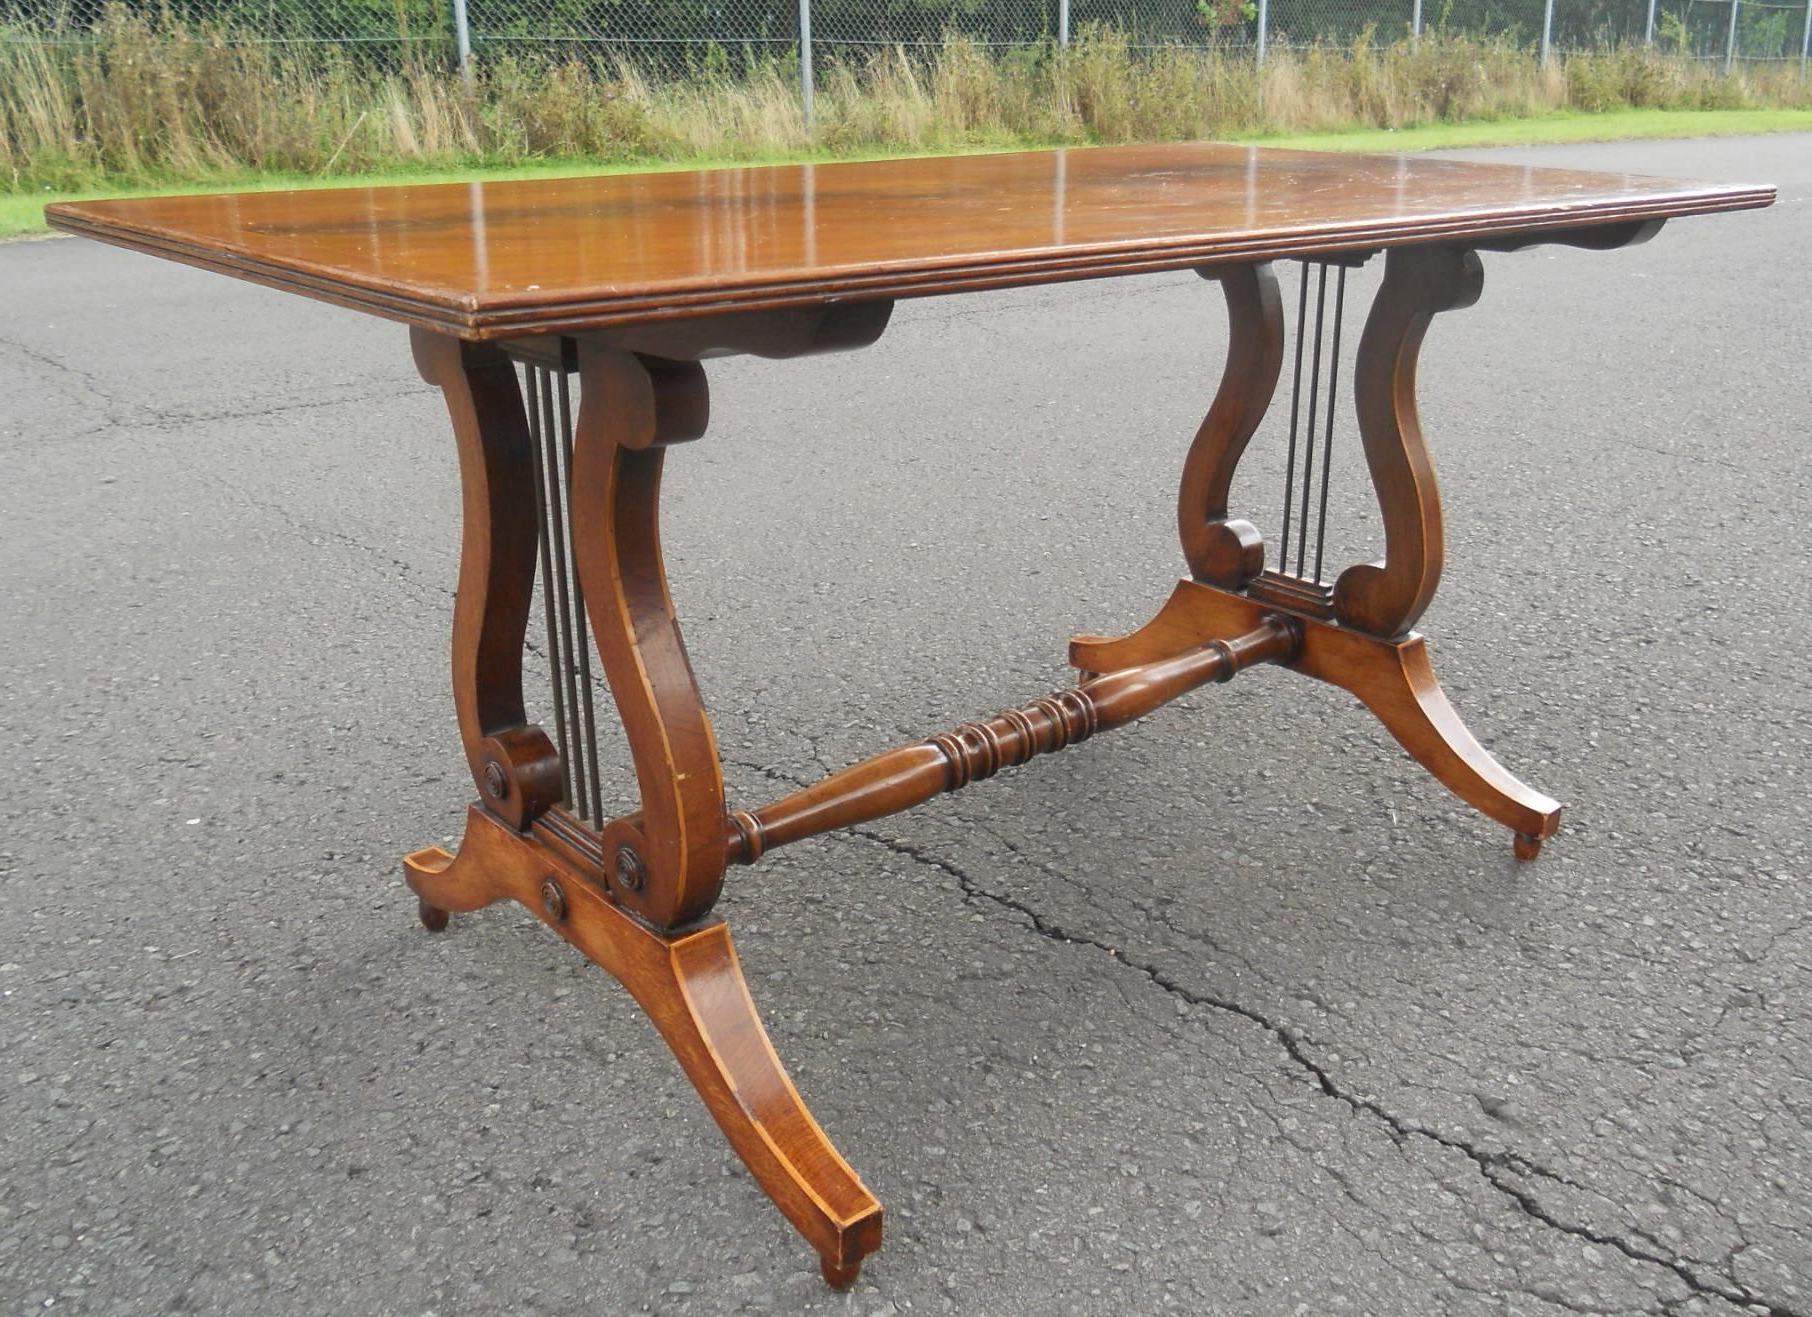 Lyre End Mahogany Rectangular Coffee Table With Favorite Lyre Coffee Tables (Gallery 7 of 20)